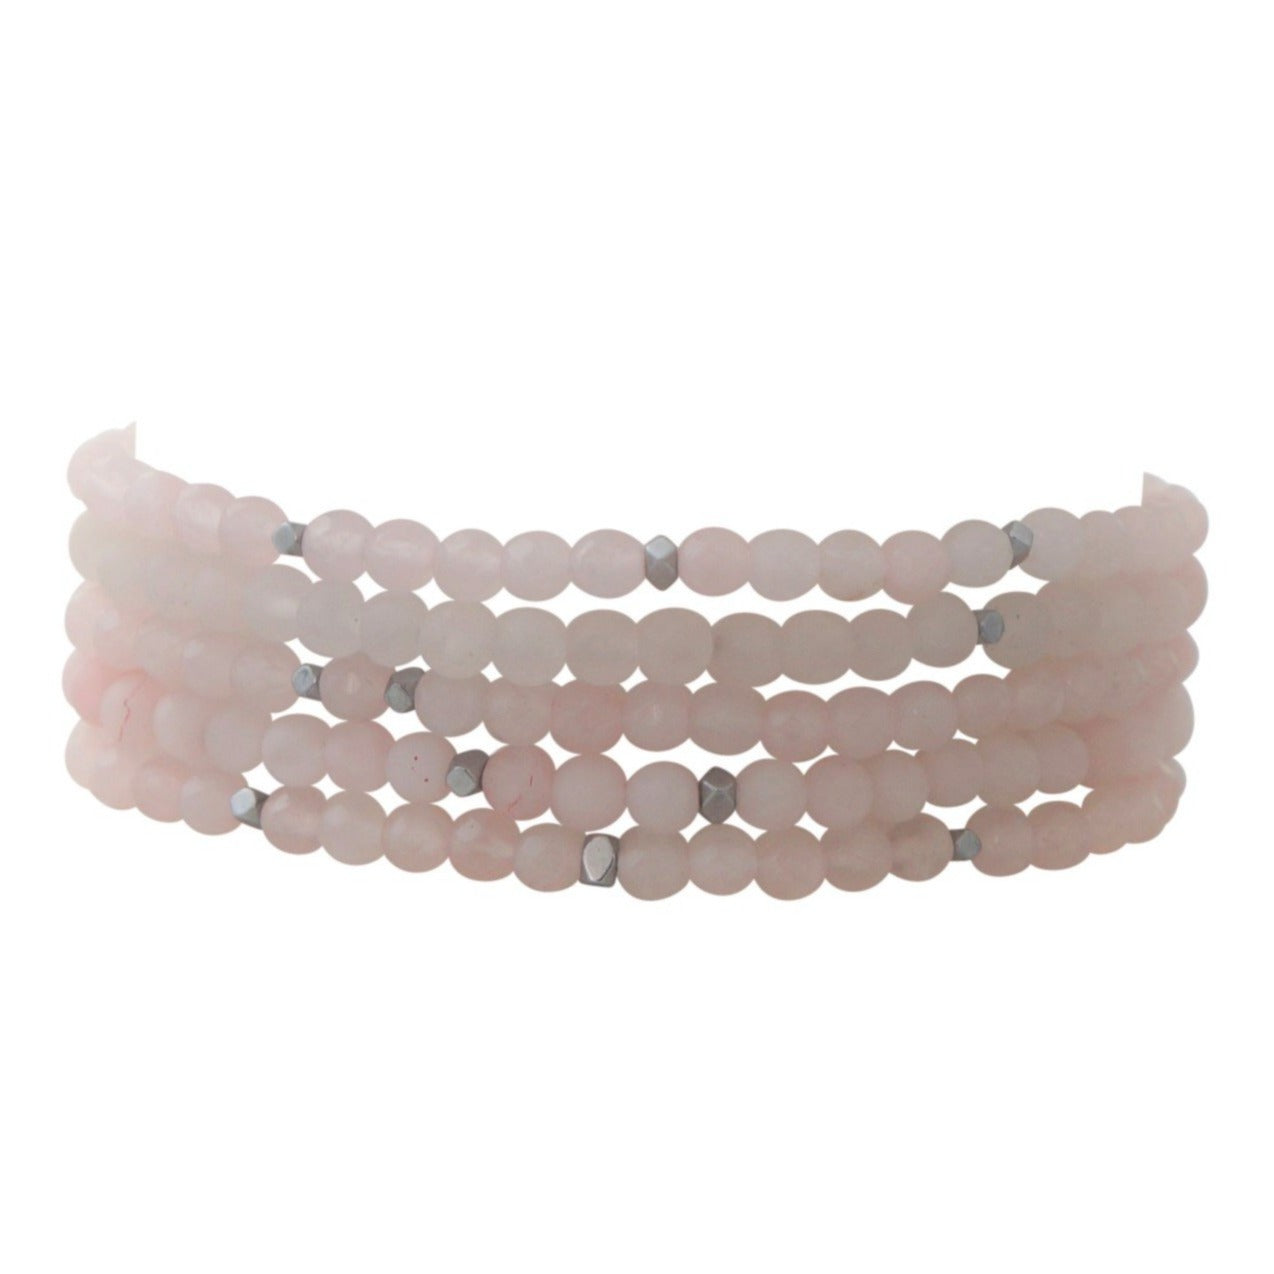 Courage Bracelet Stack